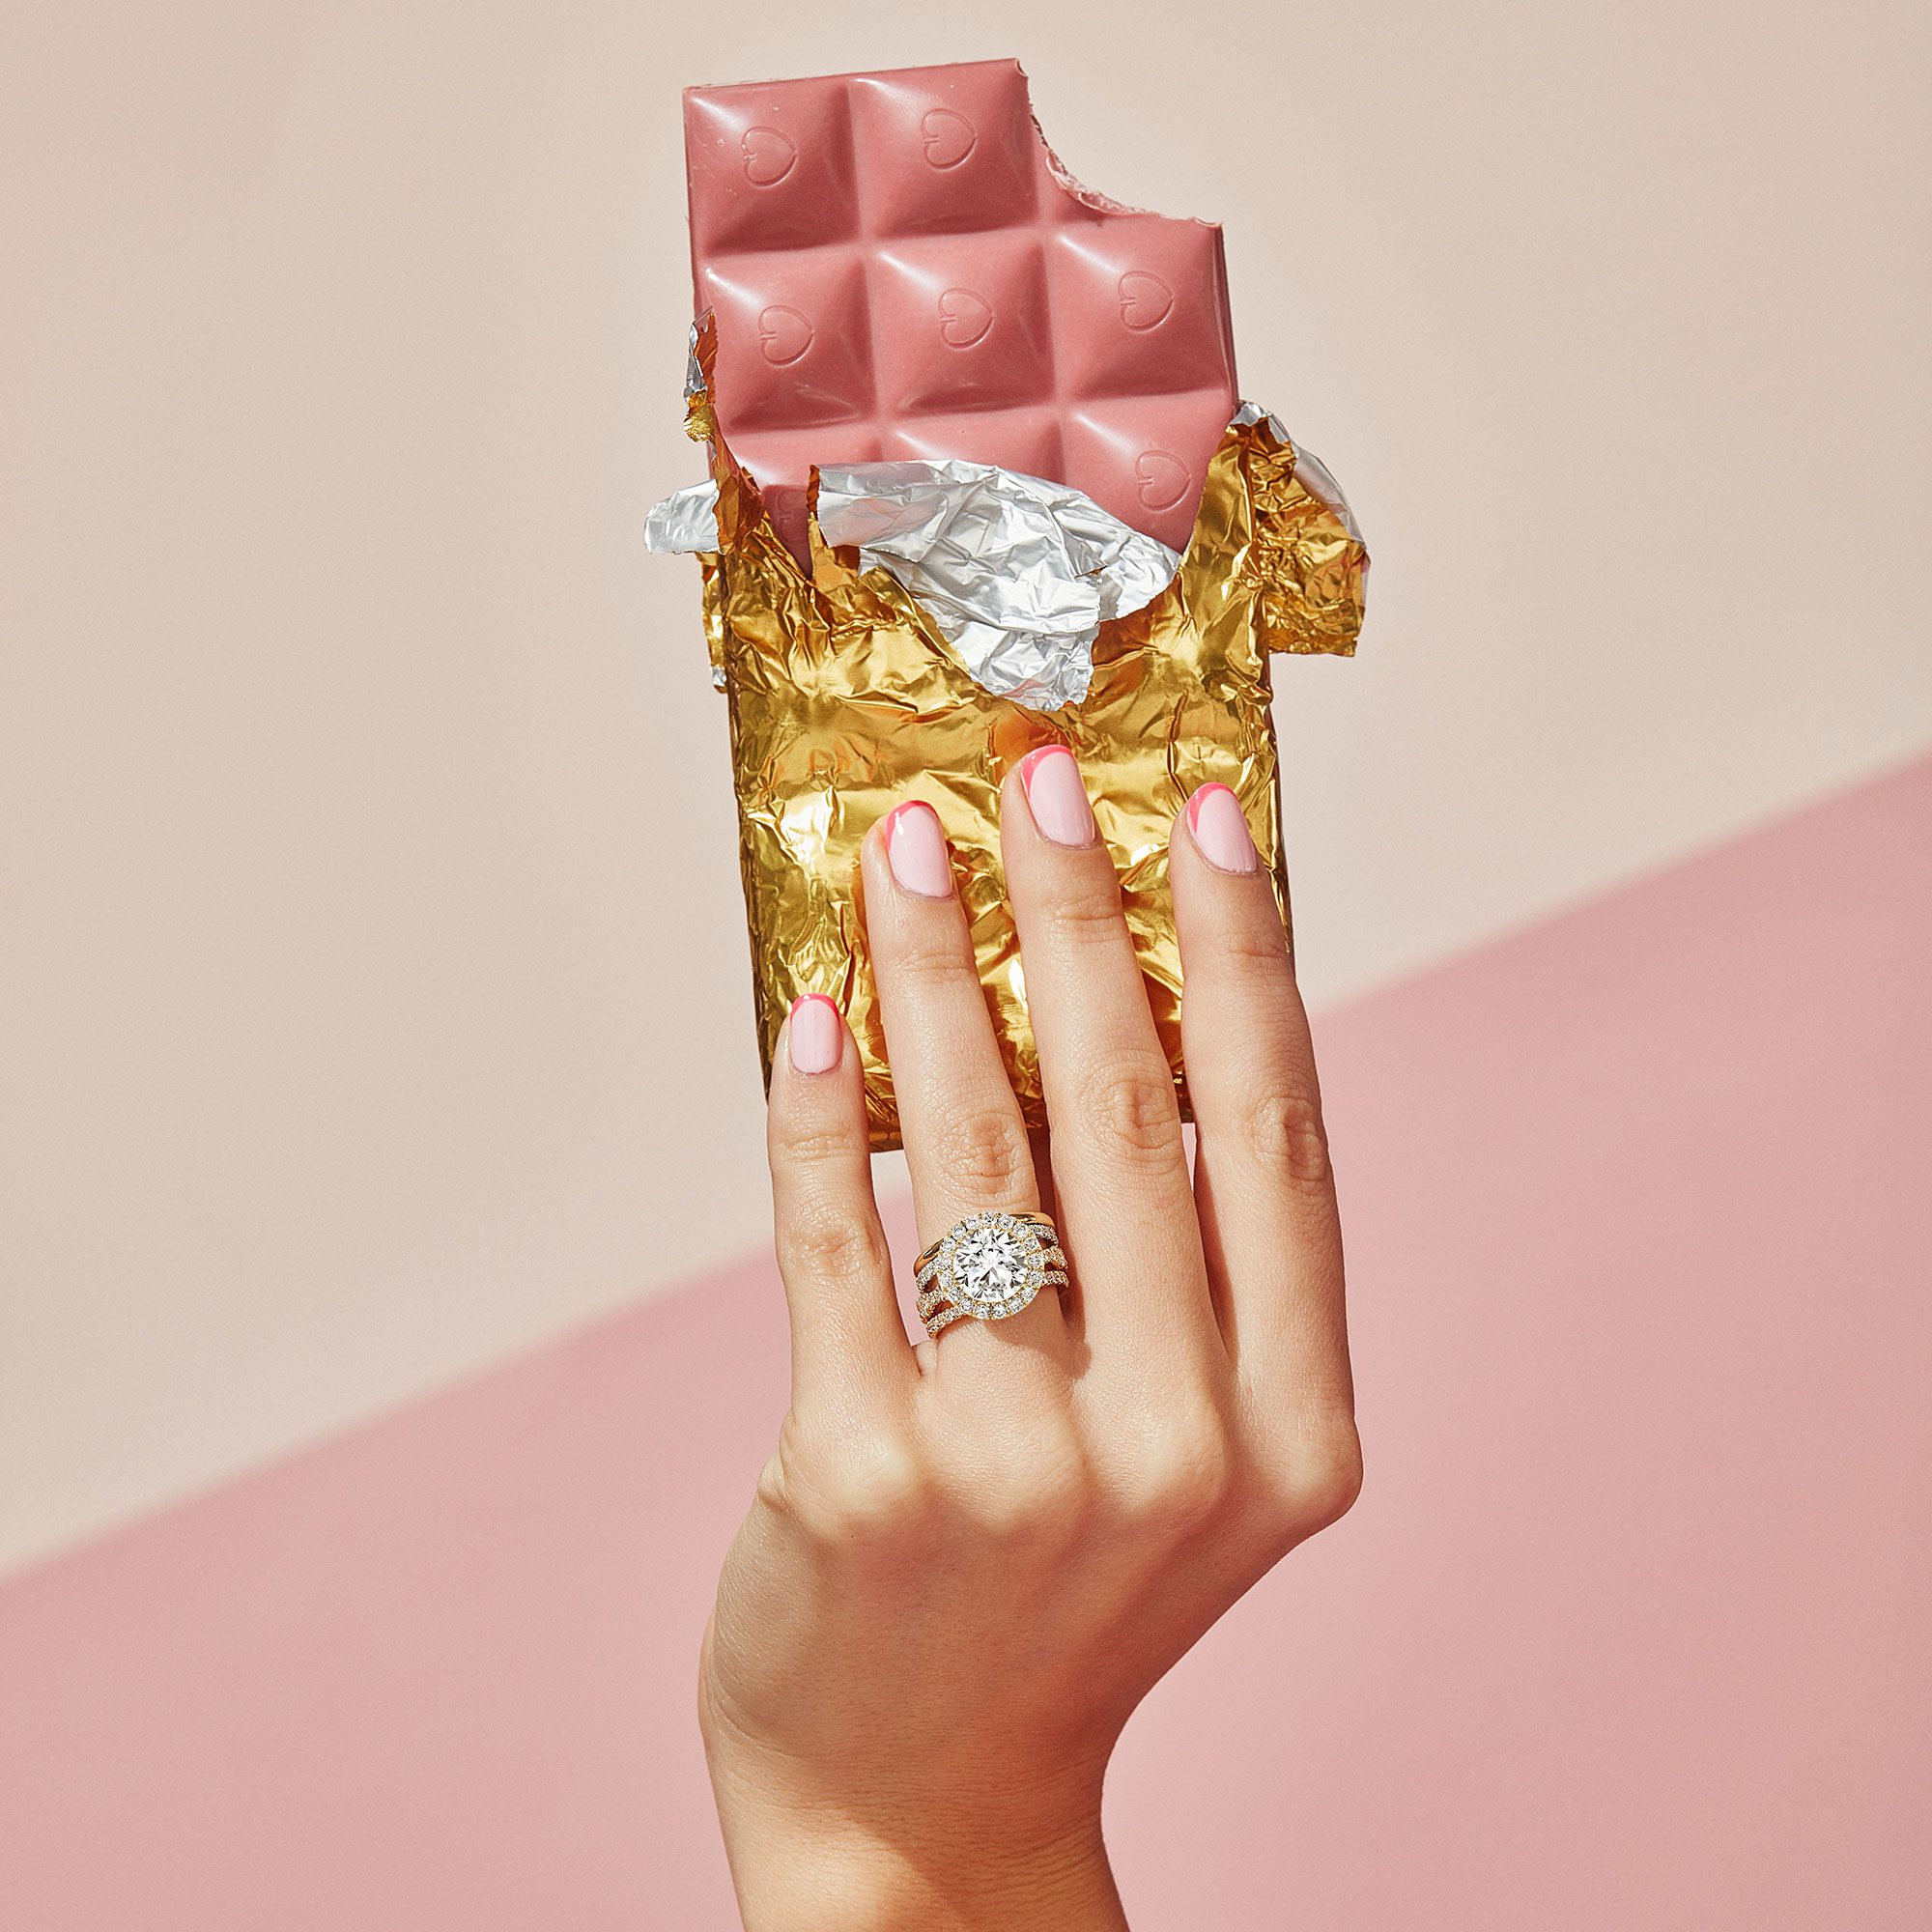 Yvonne Yellow Gold Halo Lab Diamond Ring on Hand Model by Oui